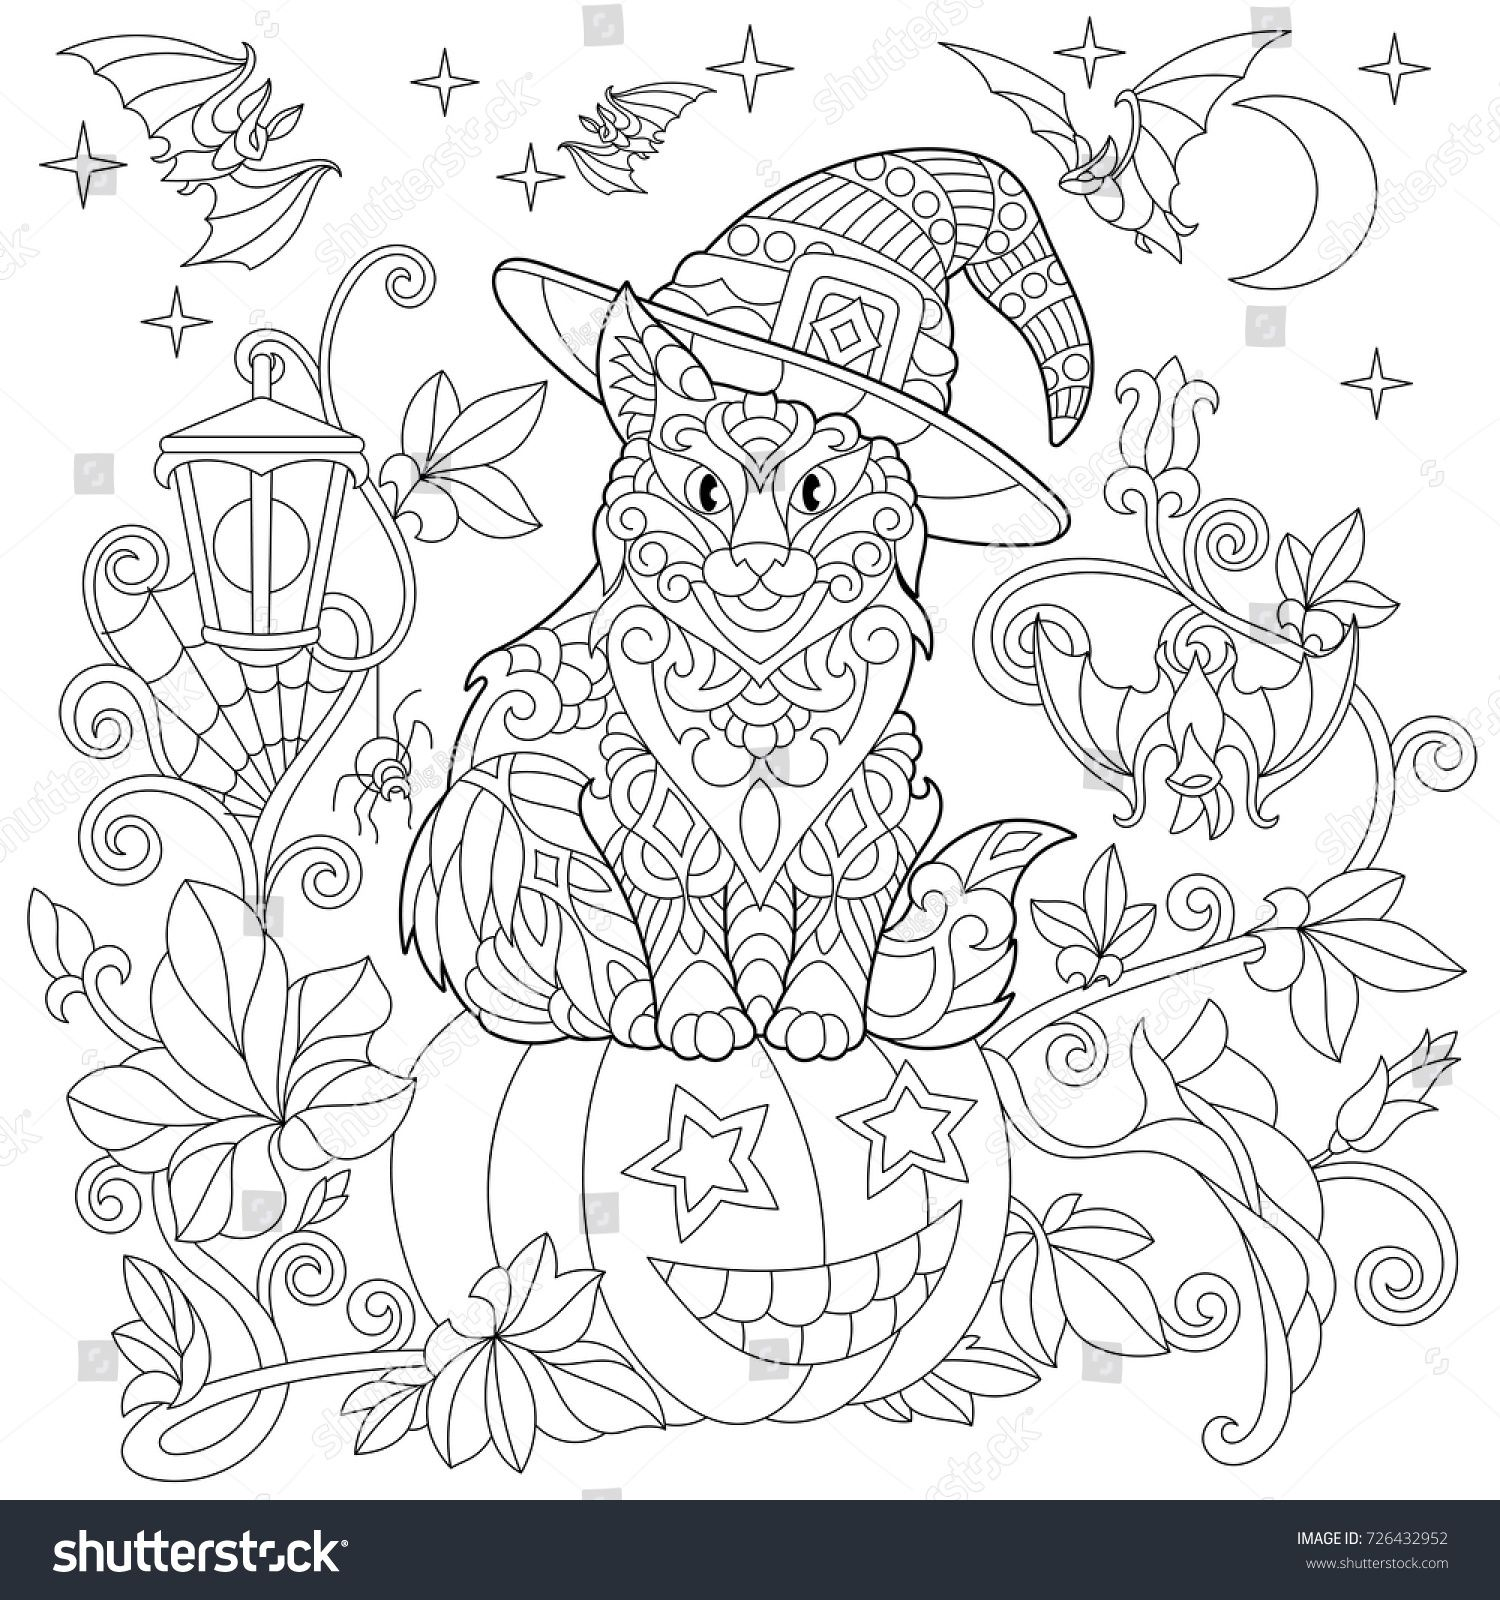 Halloween Coloring Page Cat In A Hat Halloween Pumpkin Flying Bats Spider Web Hanging Lanter Halloween Coloring Pages Halloween Coloring Cat Coloring Page